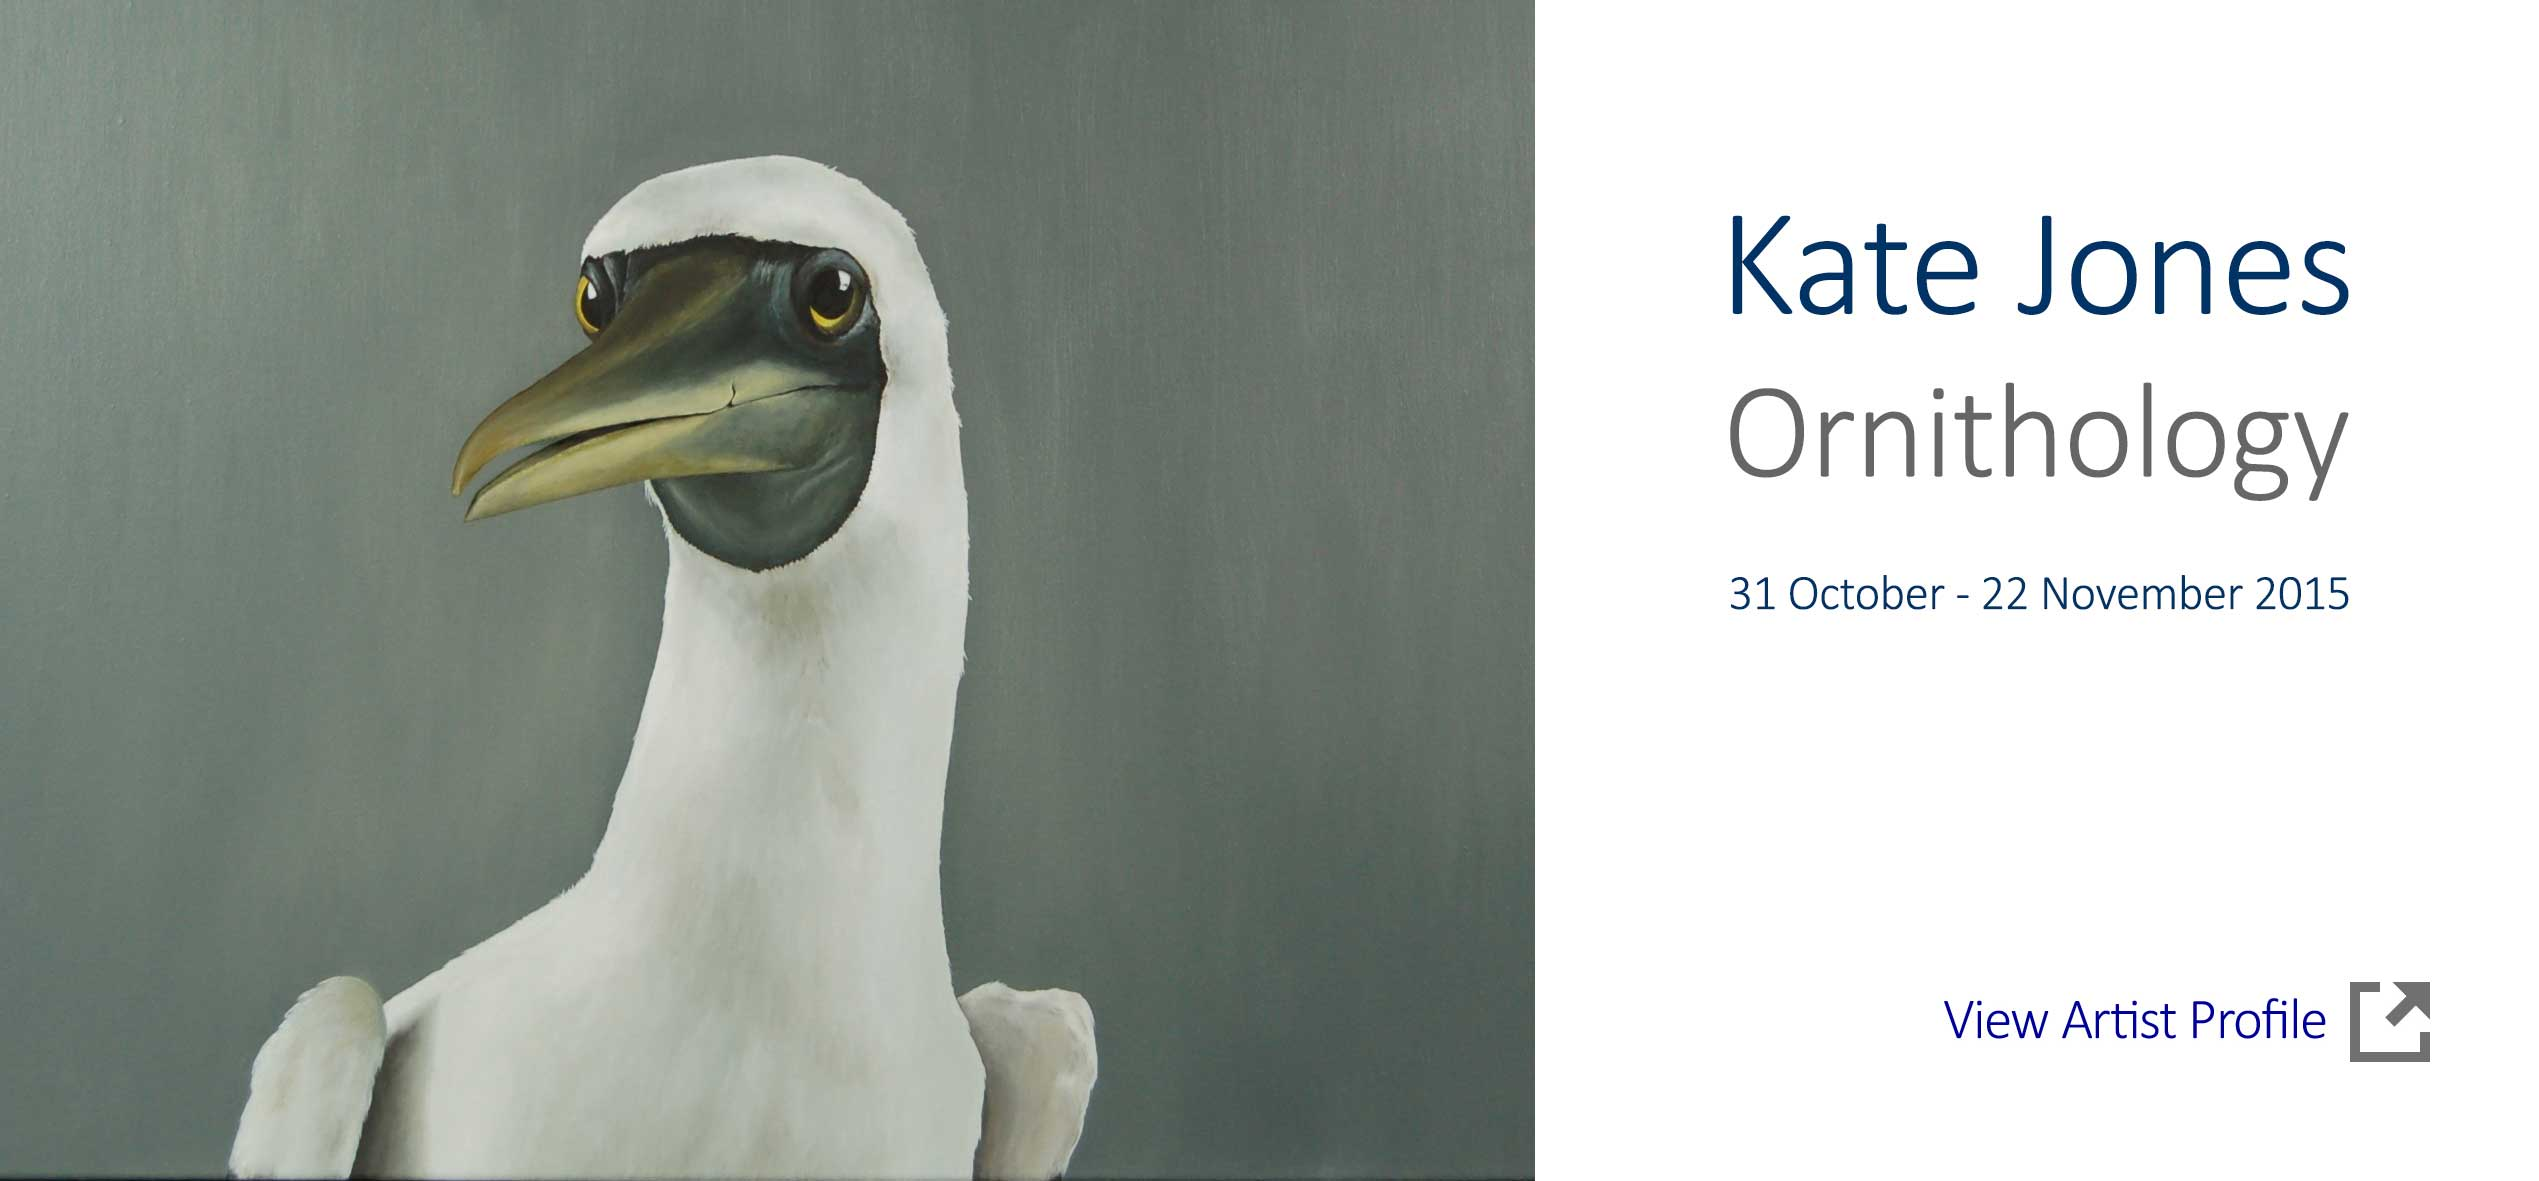 Artsite Gallery Exhibition  - Kate Jones - Ornithology - Solo Exhibition. Artsite Gallery 31 October - 22 November2015 - join the artist at the opening on Sunday 1ts November 3-5pm - All Welcome